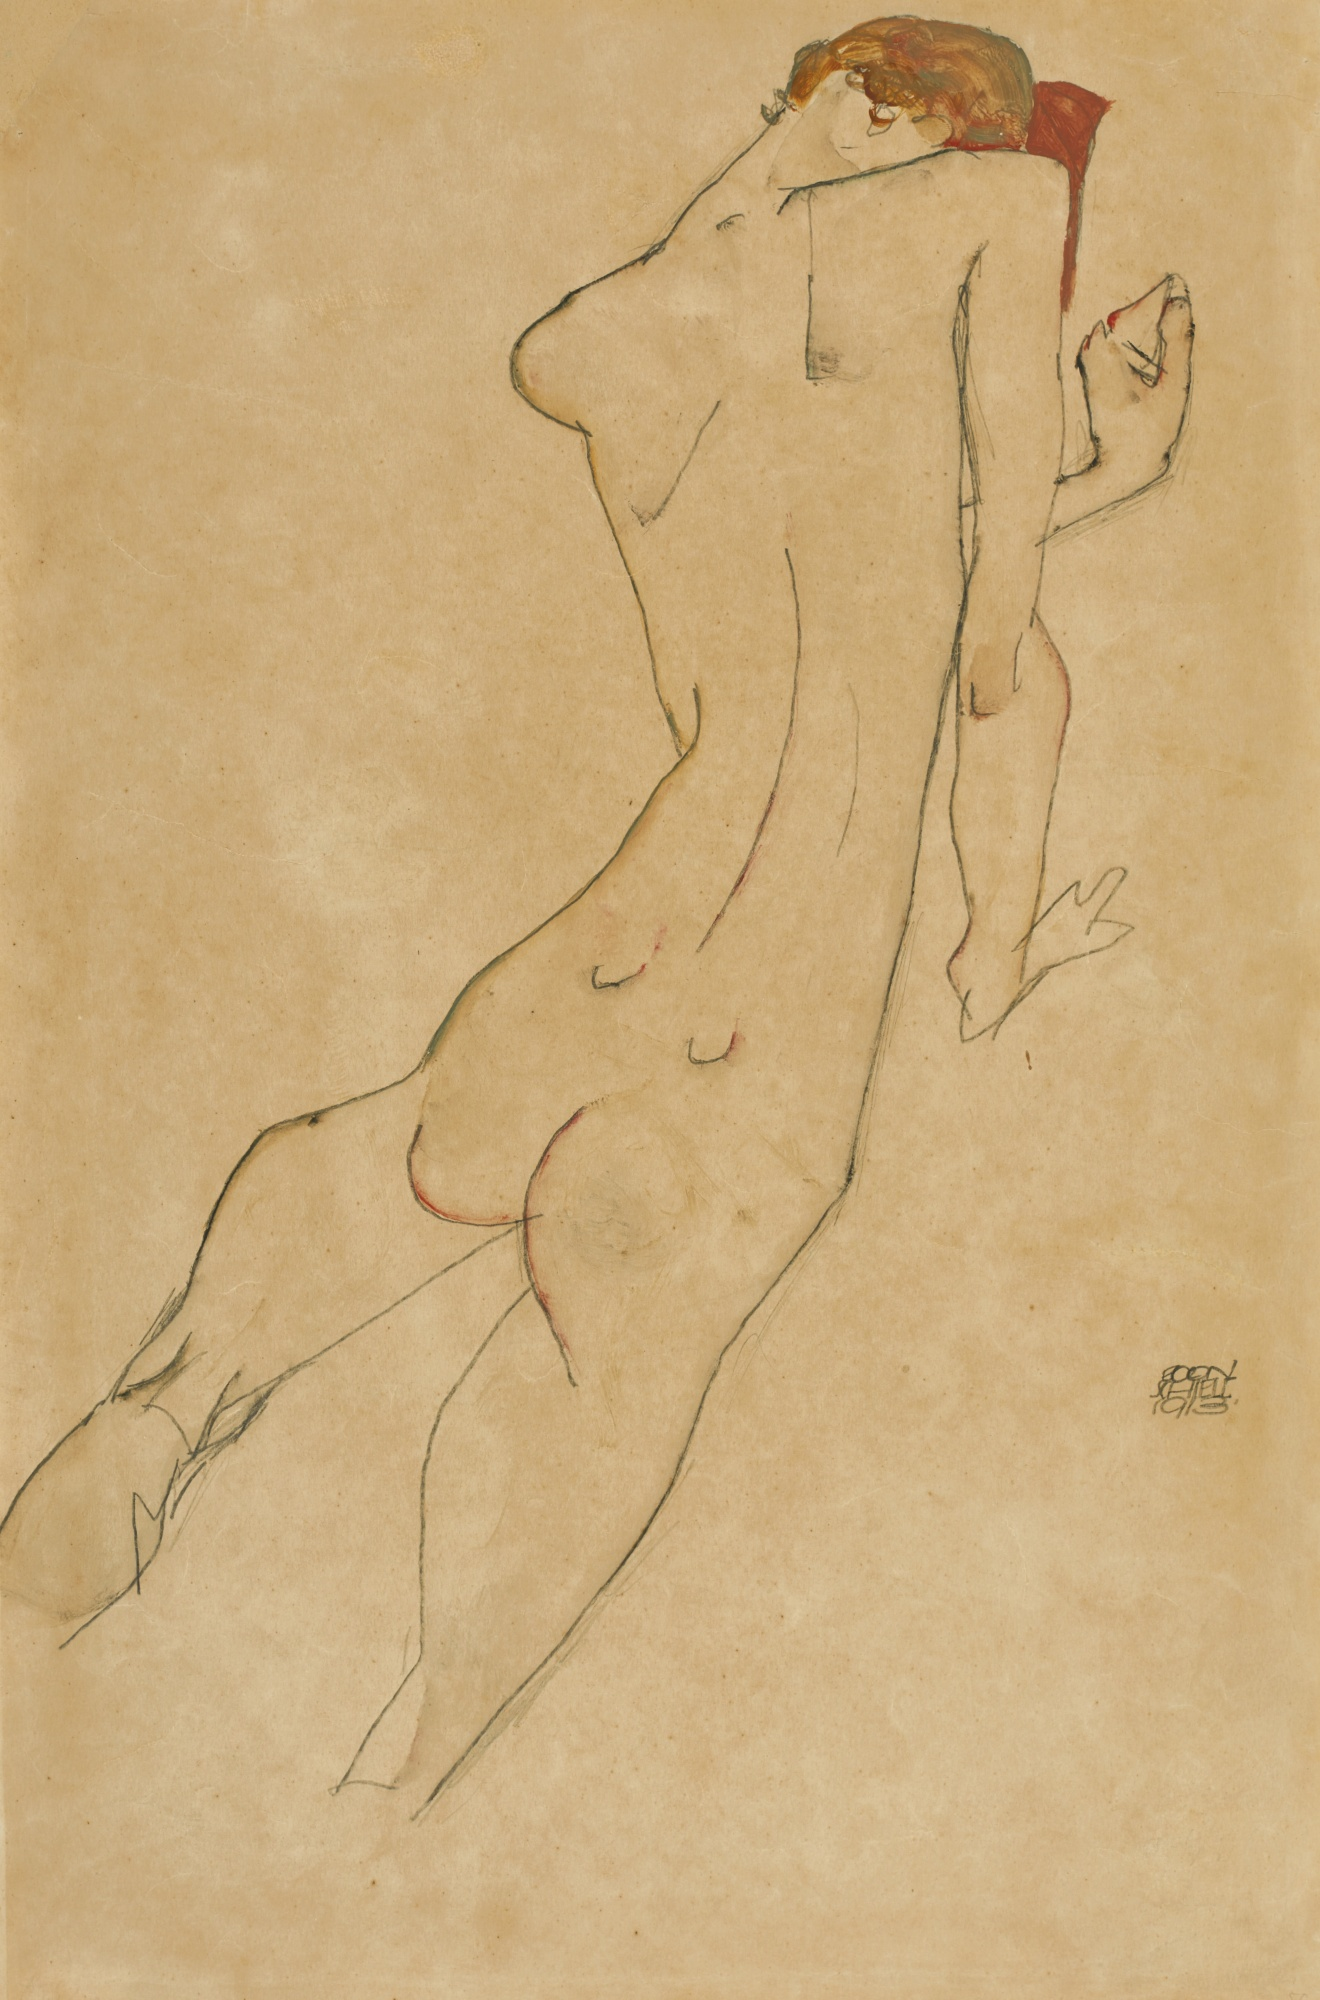 Egon Schiele-Weiblicher Ruckenakt (Female Nude, Back View) - Recto Sitzender Weiblicher Akt (Seated Female Nude) - Verso-1913